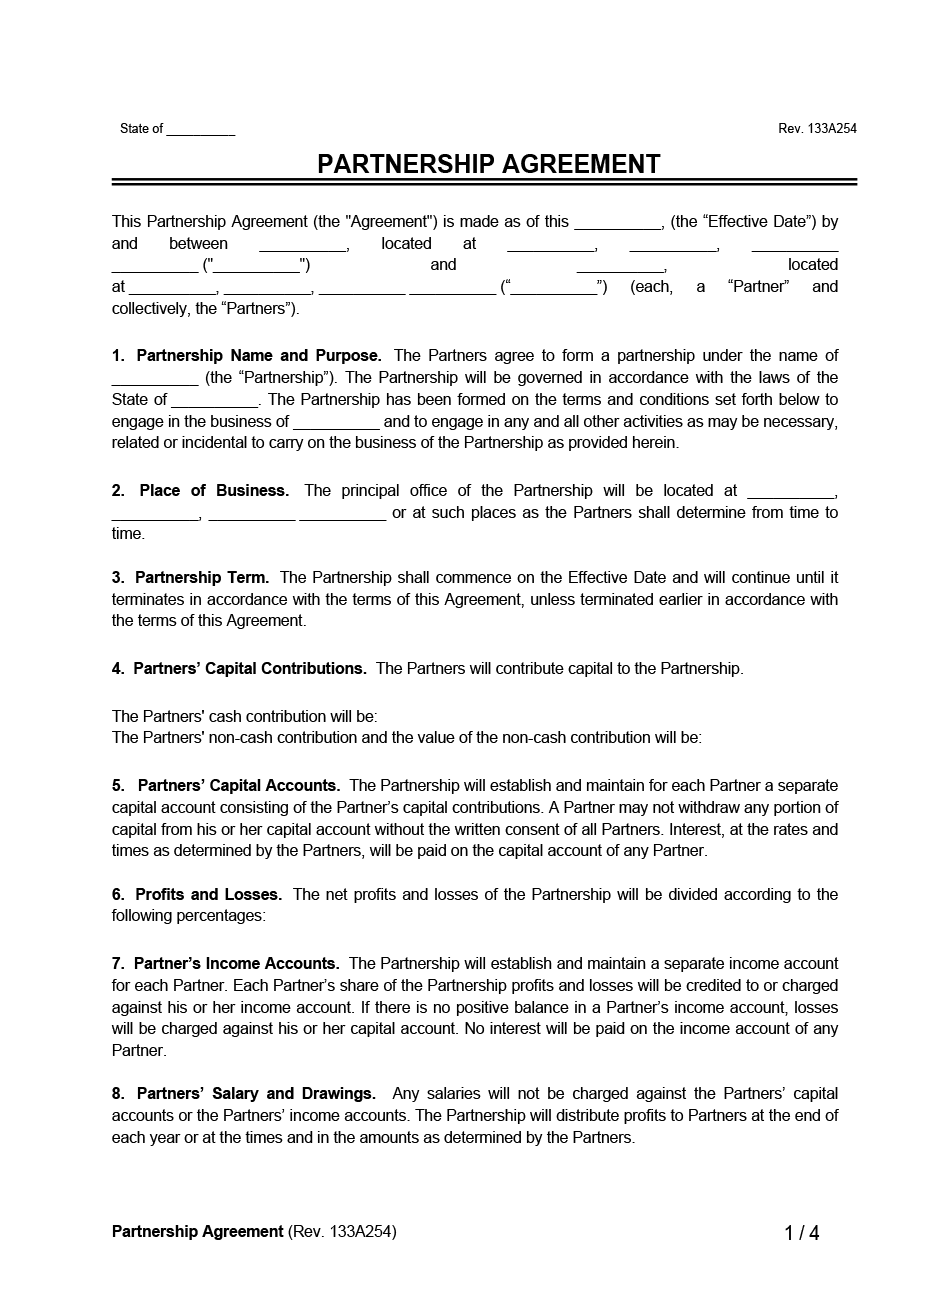 Partnership Agreement example form